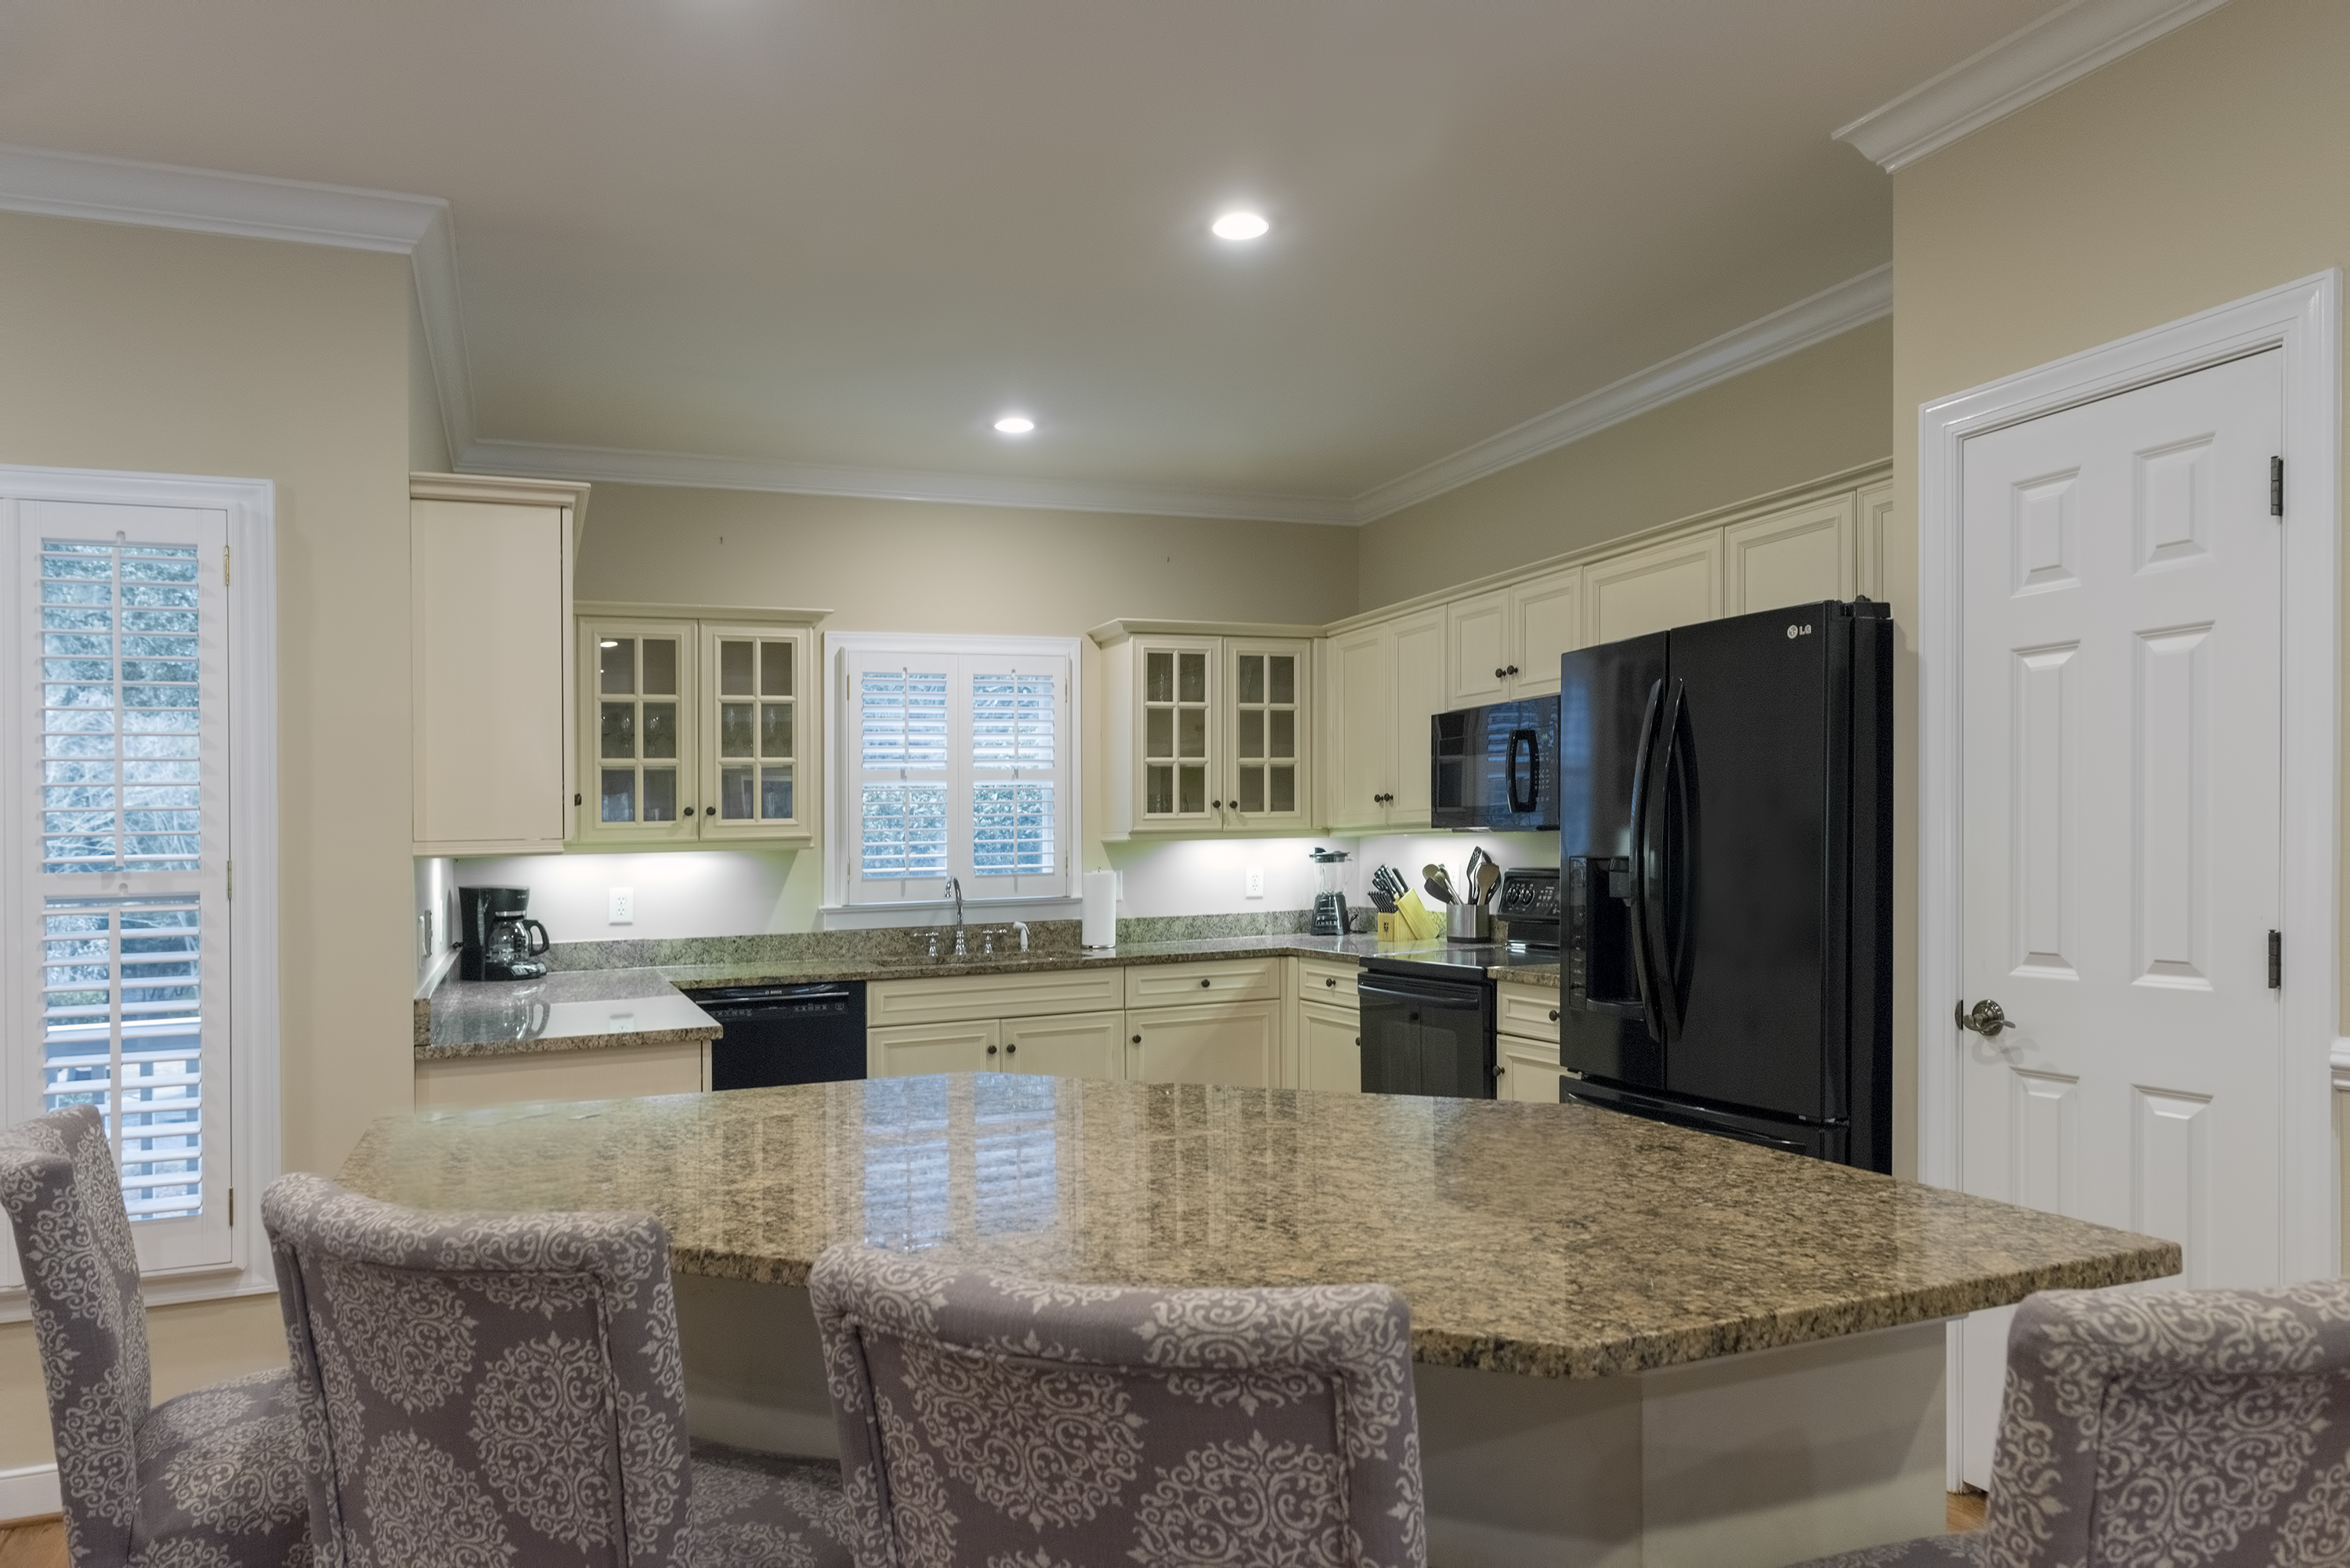 Highlights in the kitchen are granite counters and custom cabinetry.